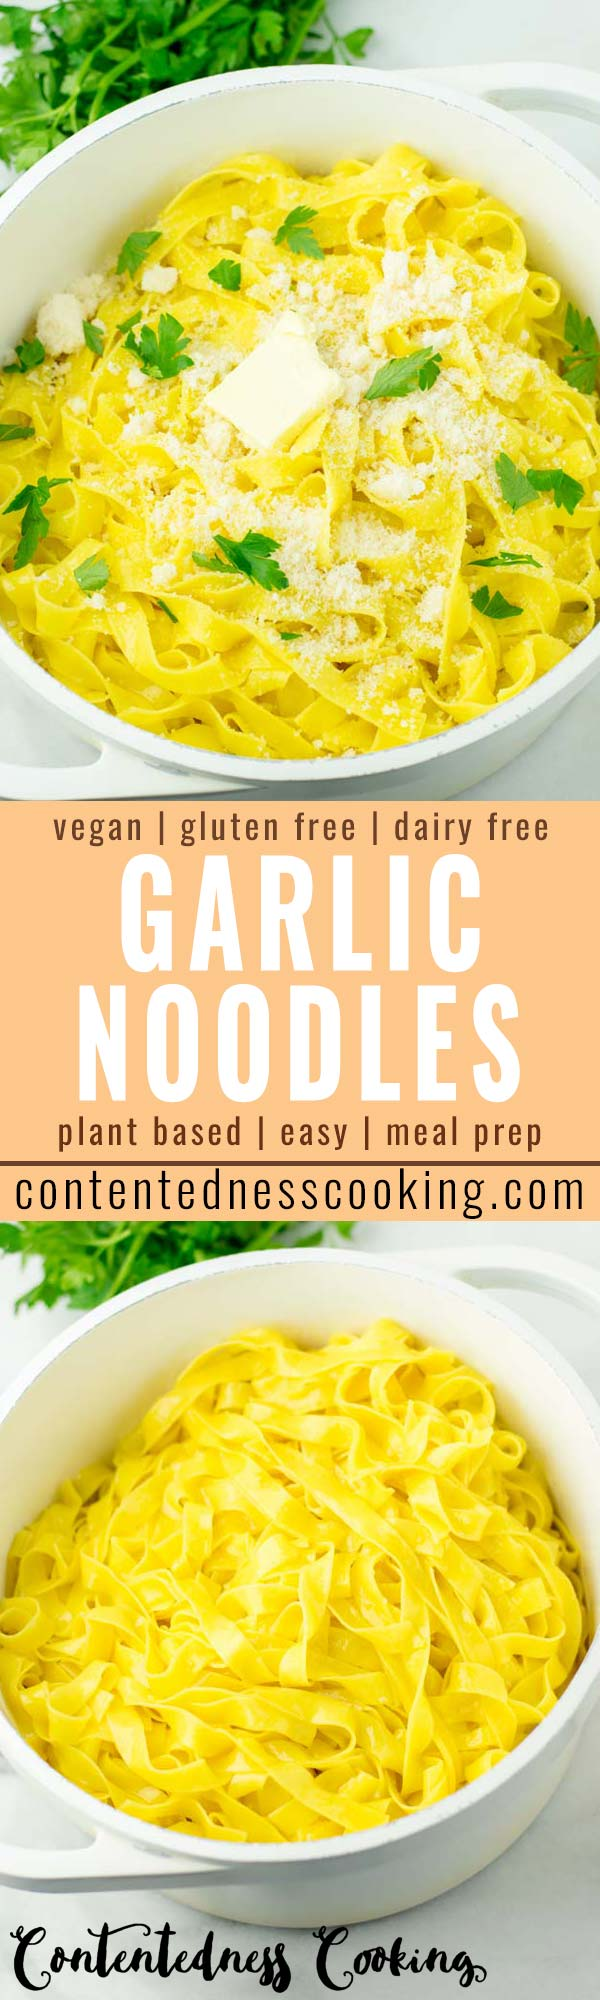 This garlic noodles are super easy to make and so satisfying! No one would ever guess it is vegan and even gluten free. Even your kids will love this pasta in no time. #vegan #dairyfree #glutenfree #vegetarian #garlicnoodles #budgetmeals #kidsmealsideas #familydinner #comfortfood #mealprep #worklunchideas #contentednesscooking